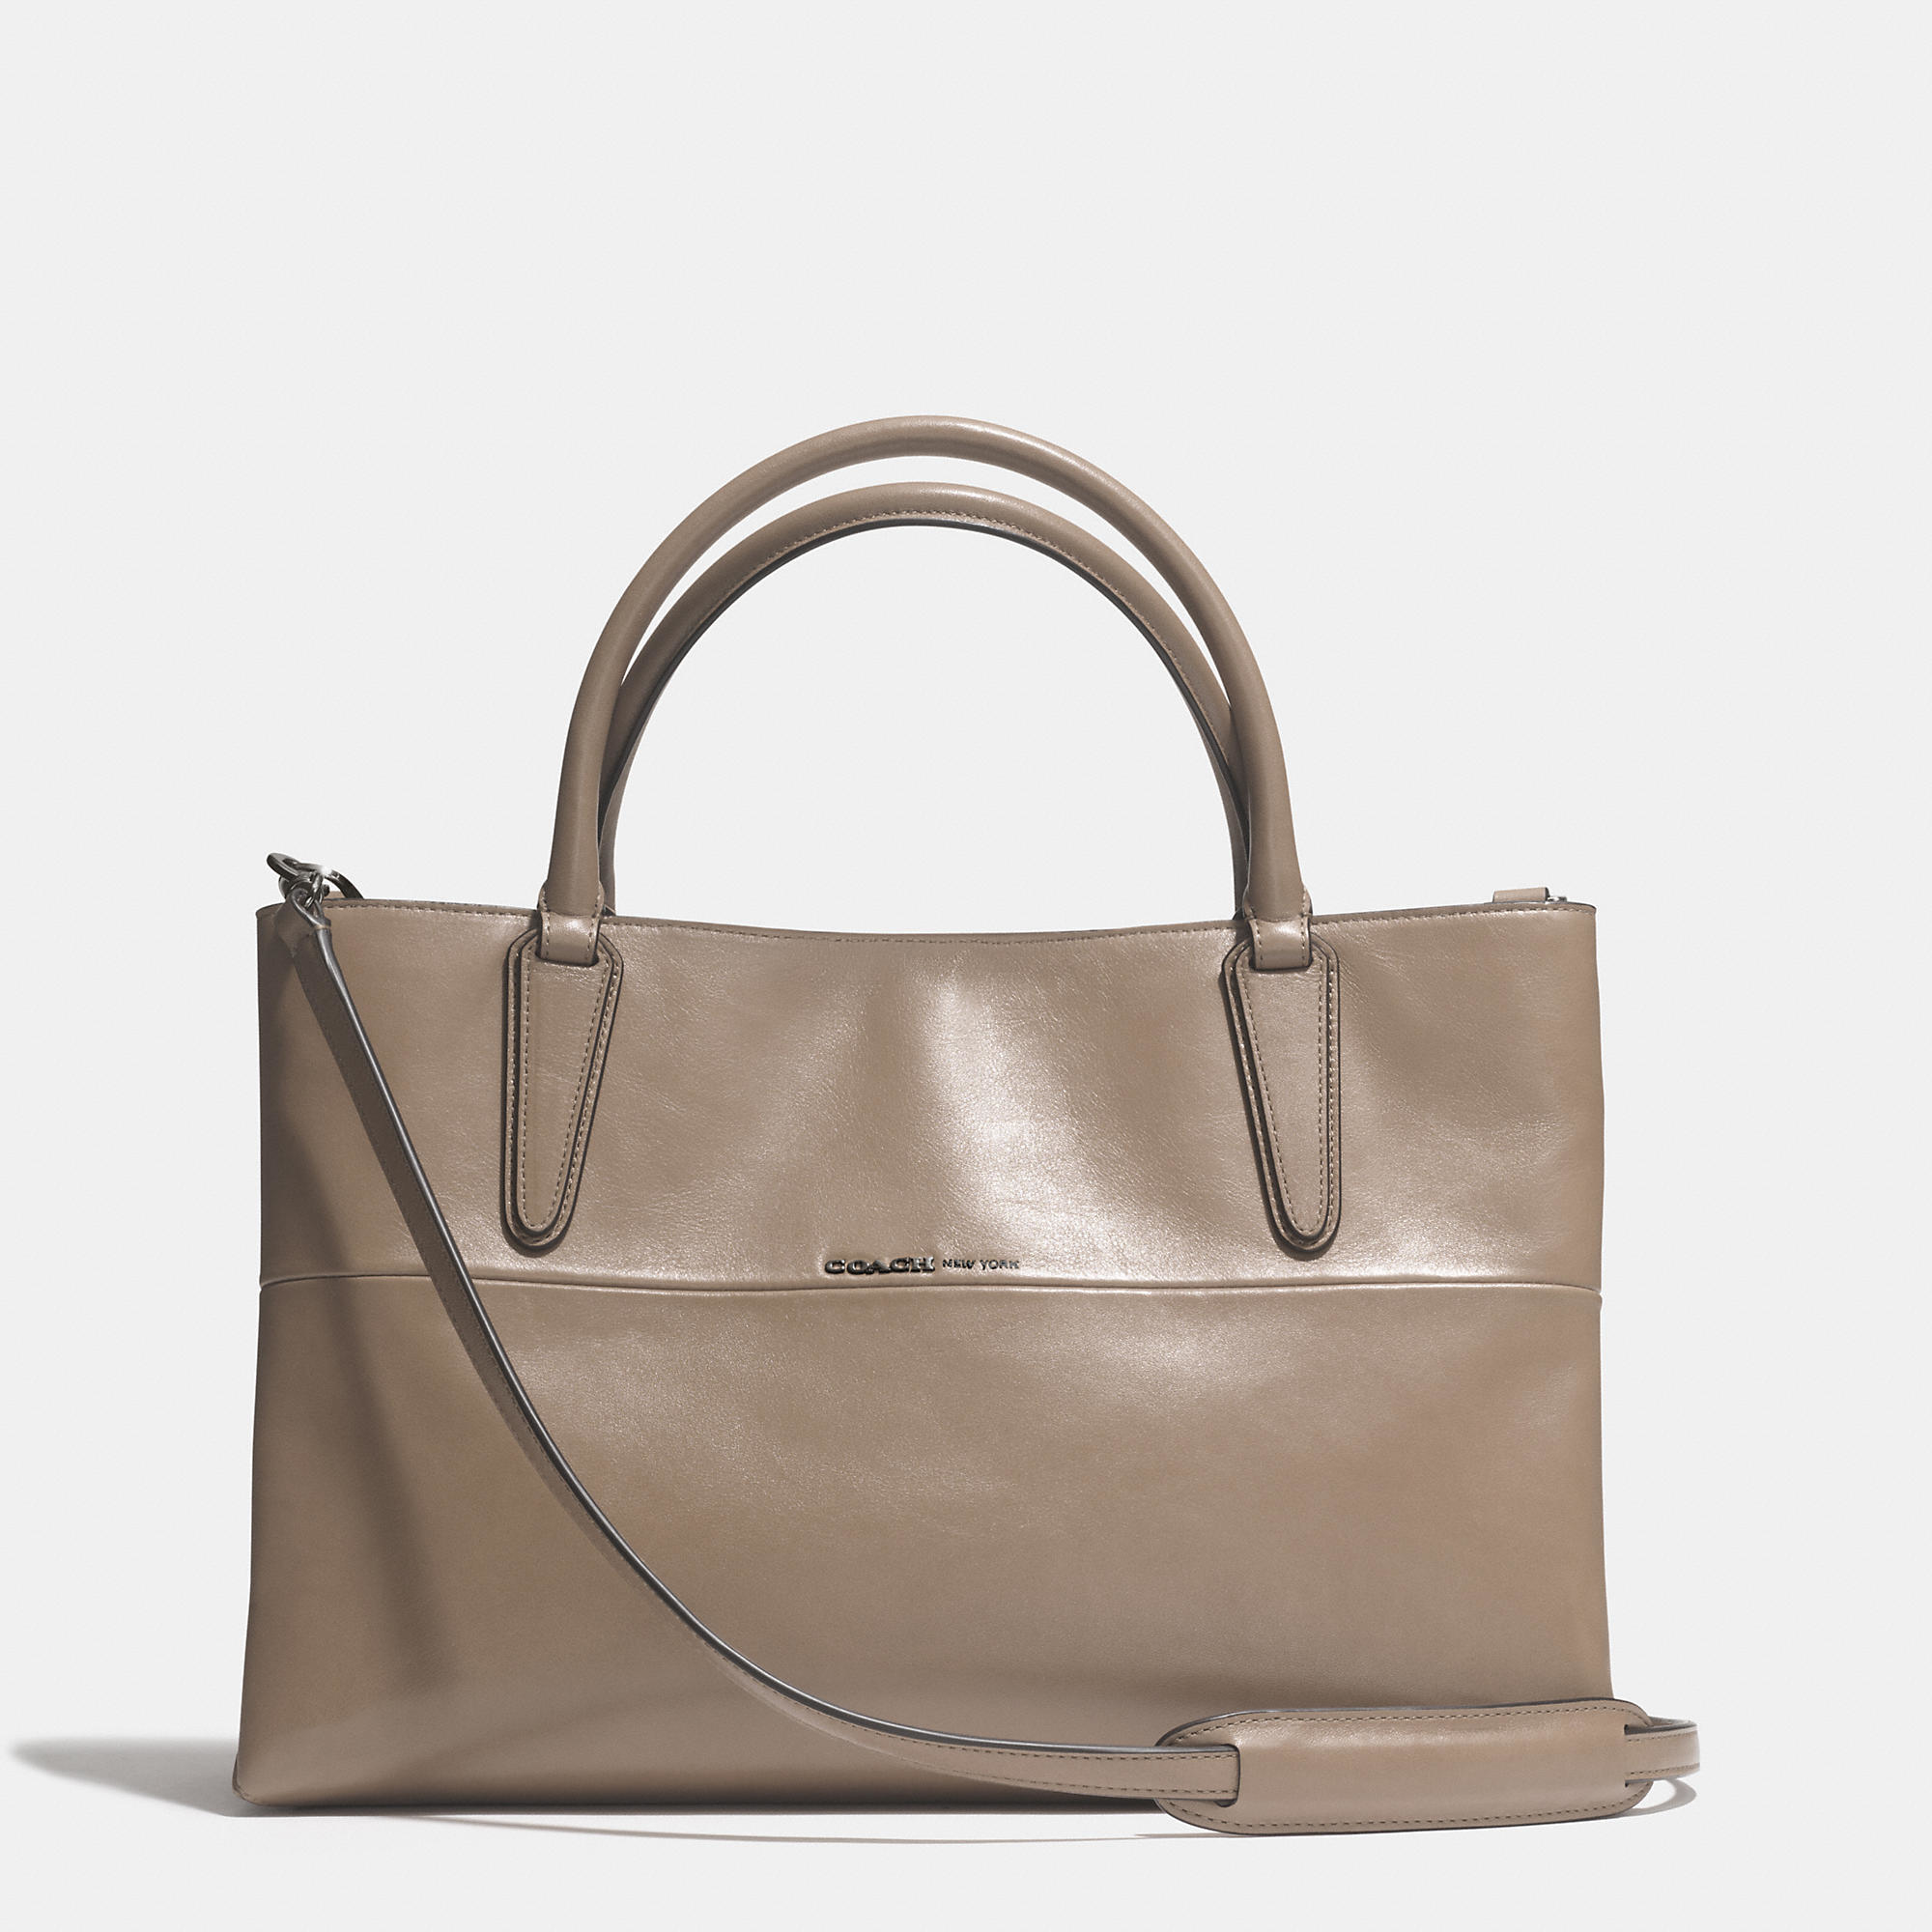 Coach Soft Borough Bag In Nappa Leather in Brown | Lyst